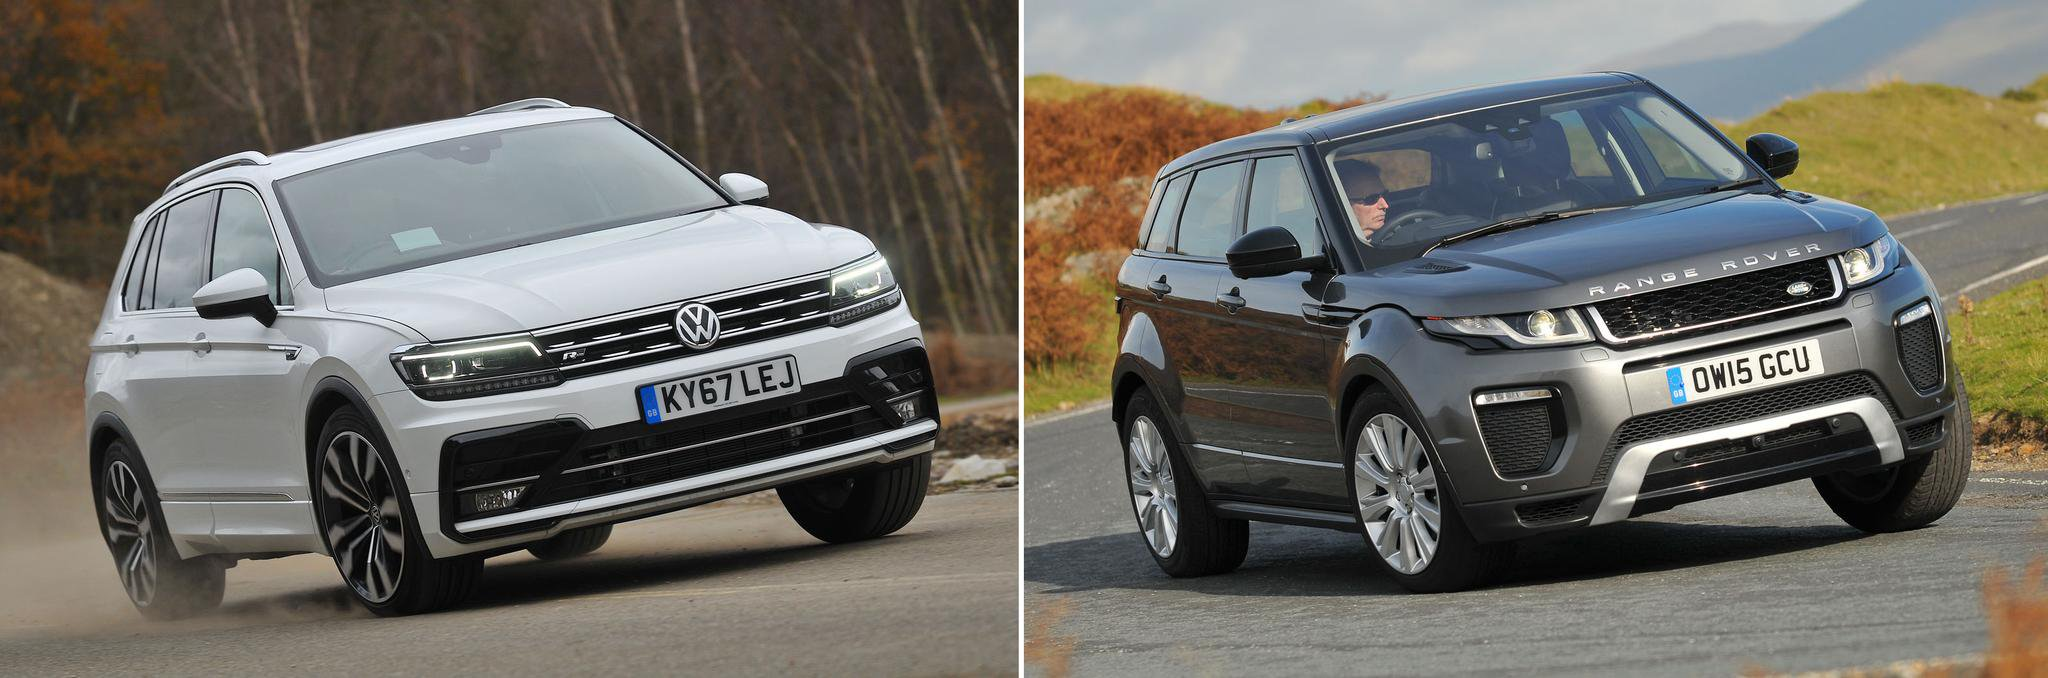 New Volkswagen Tiguan vs used Range Rover Evoque: which is best?